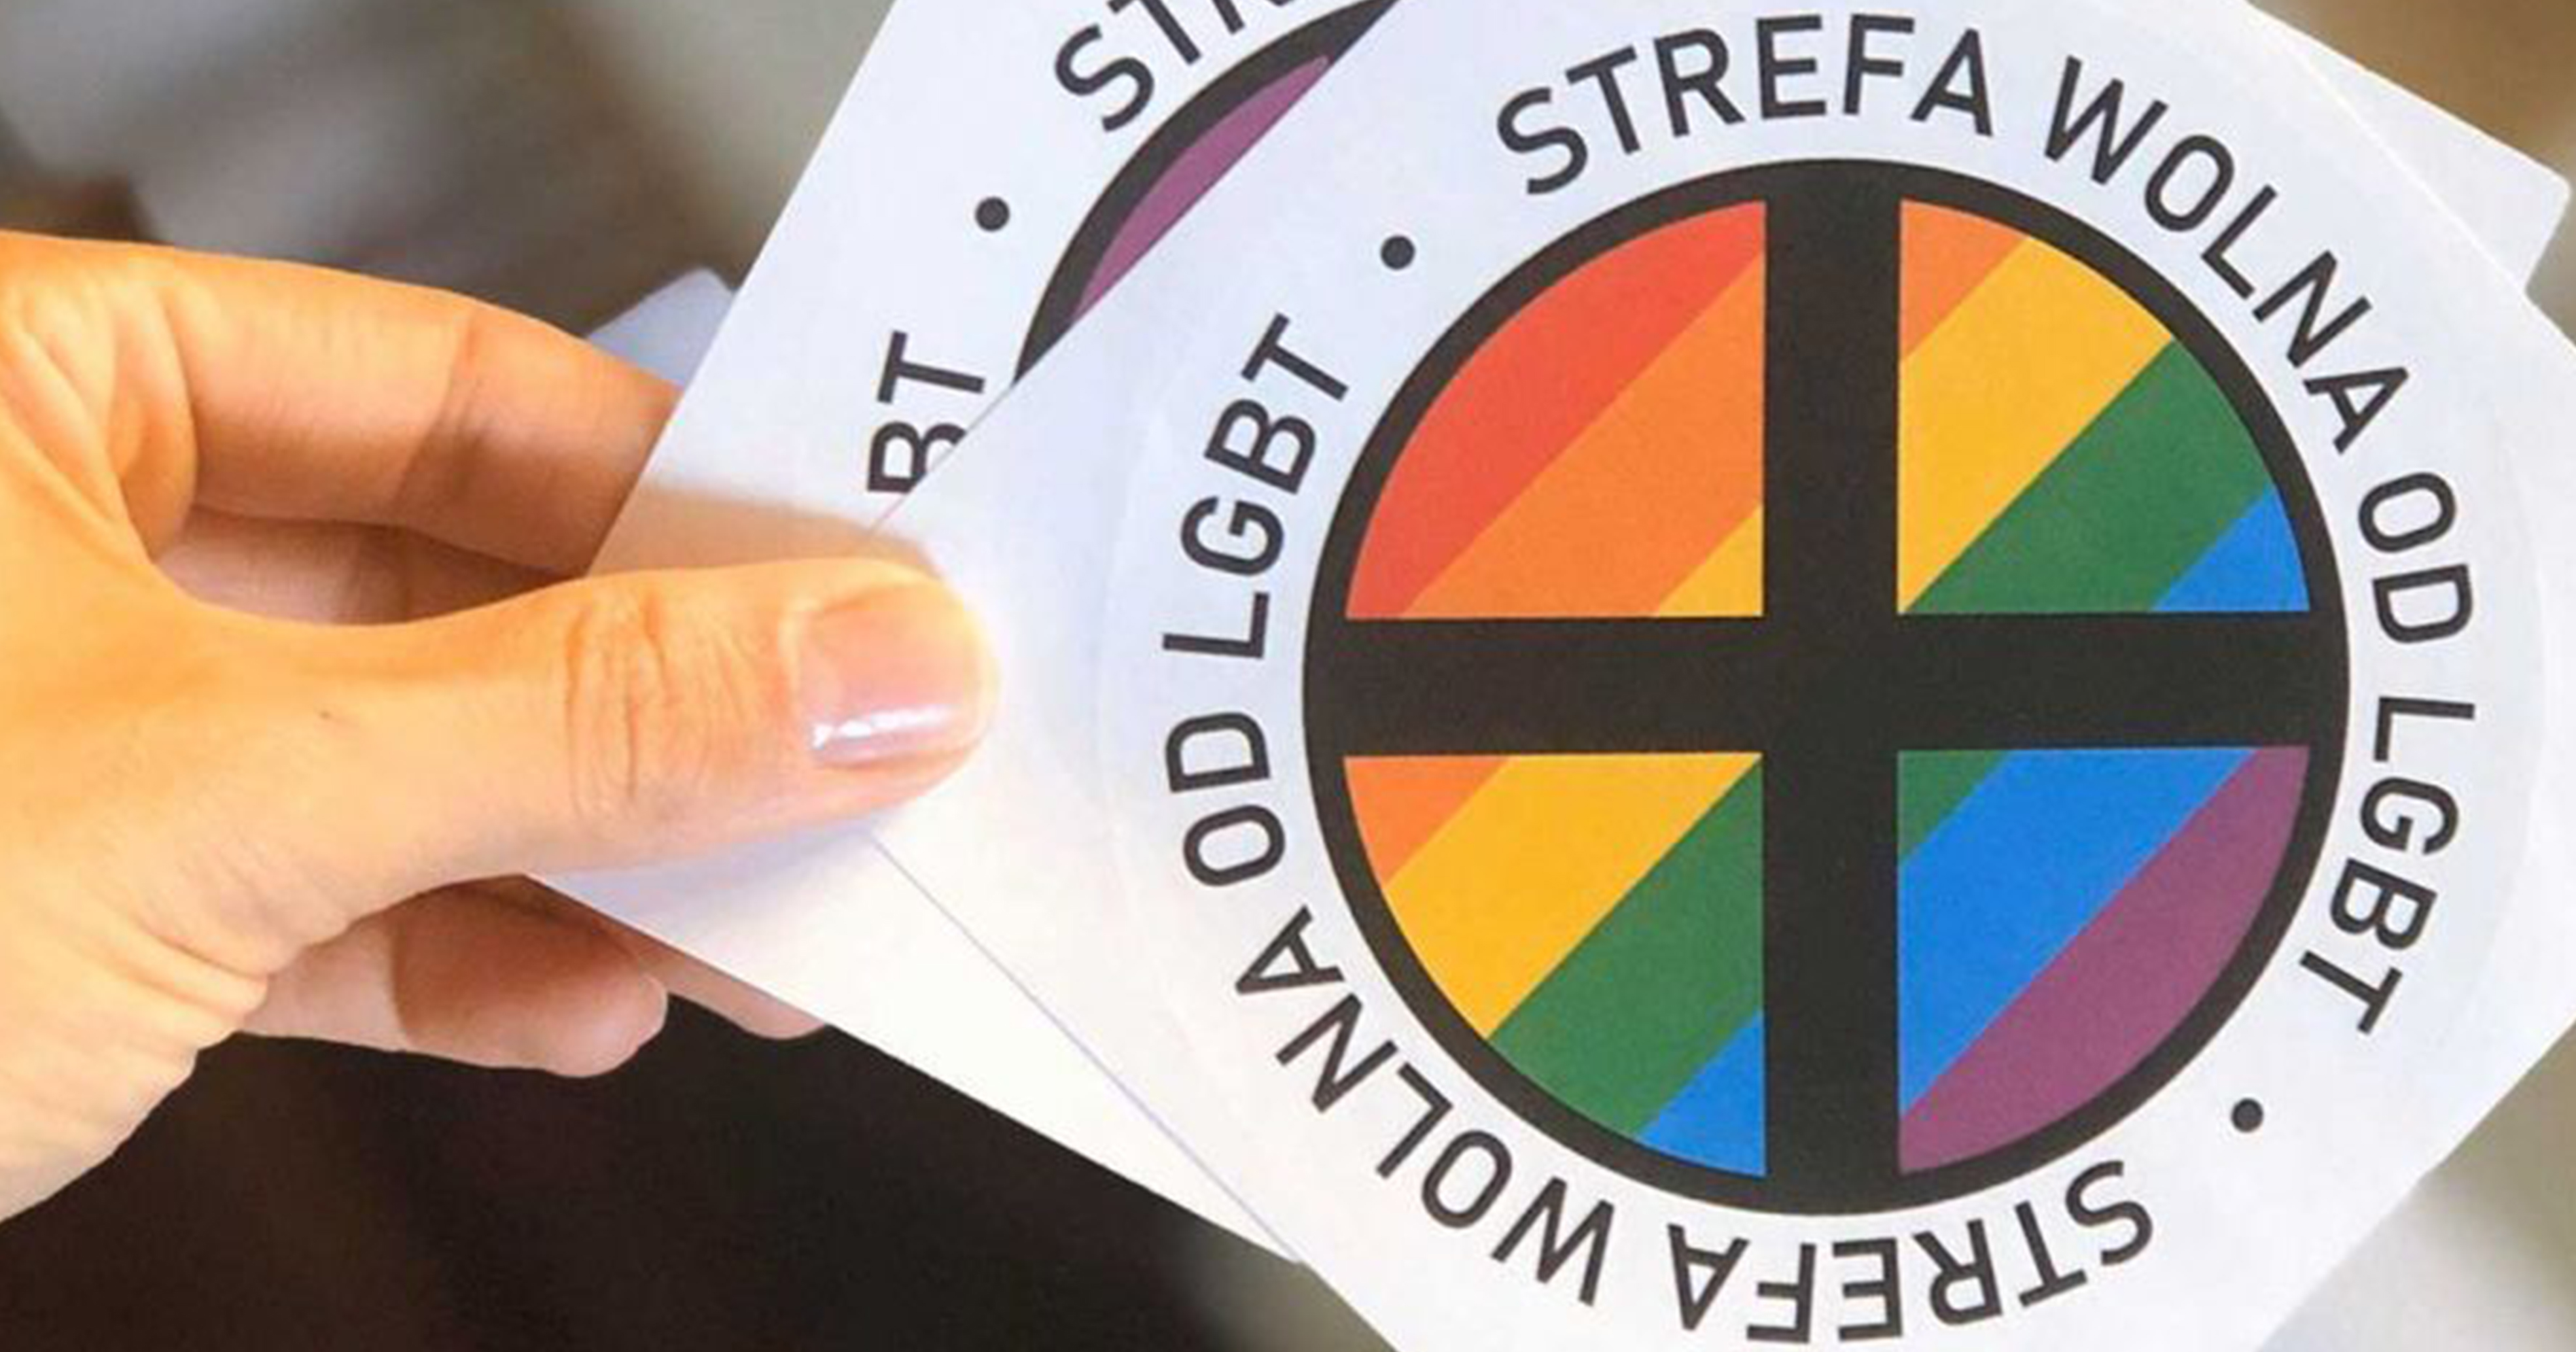 Polish anti-LGBT+ stickers